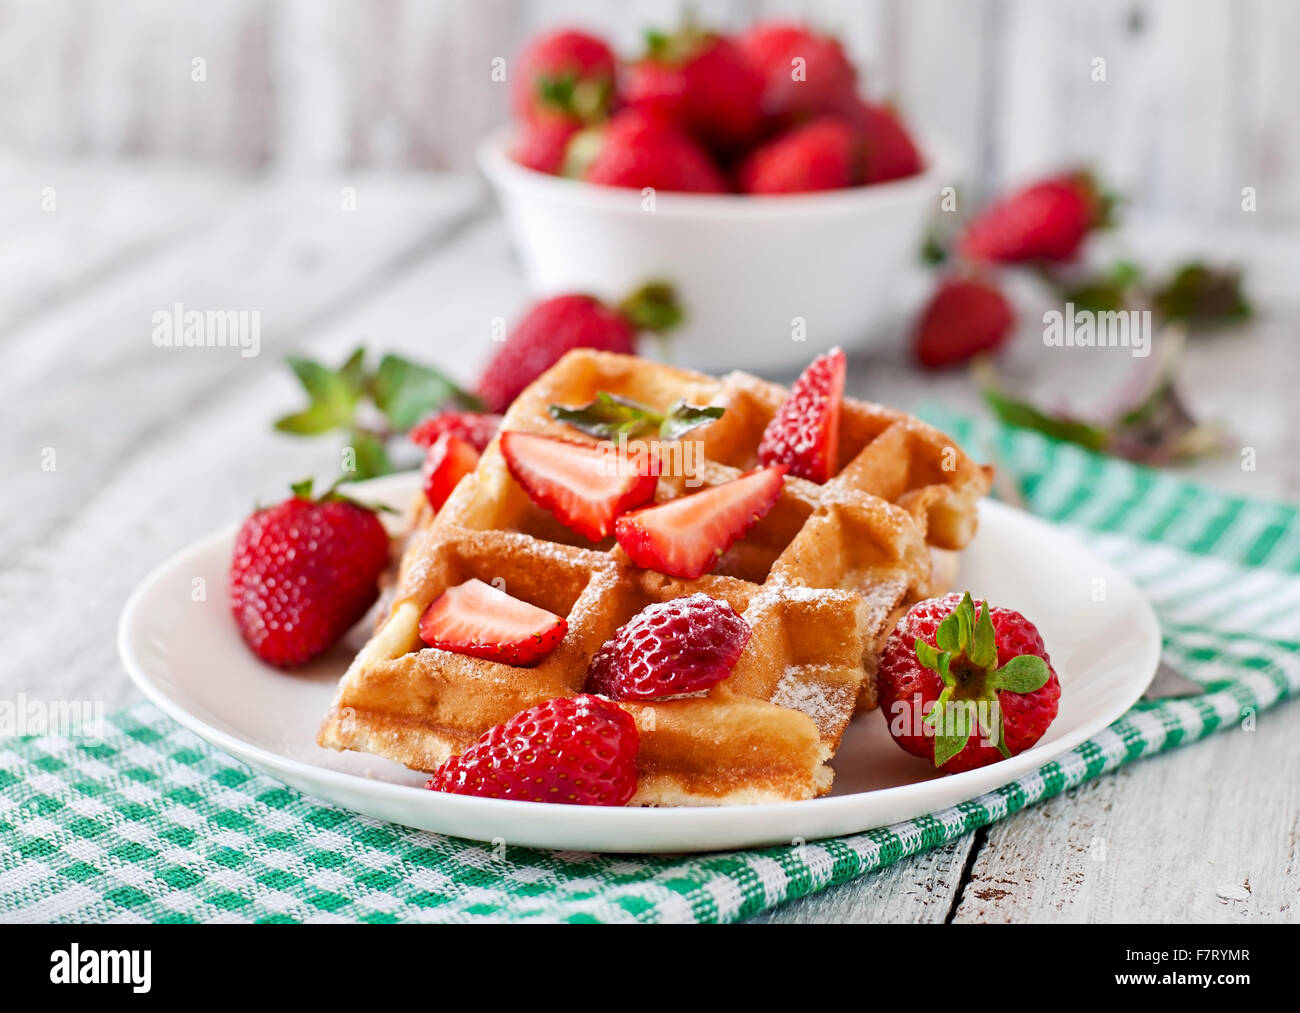 Belgium waffles with strawberries and mint on white plate - Stock Image